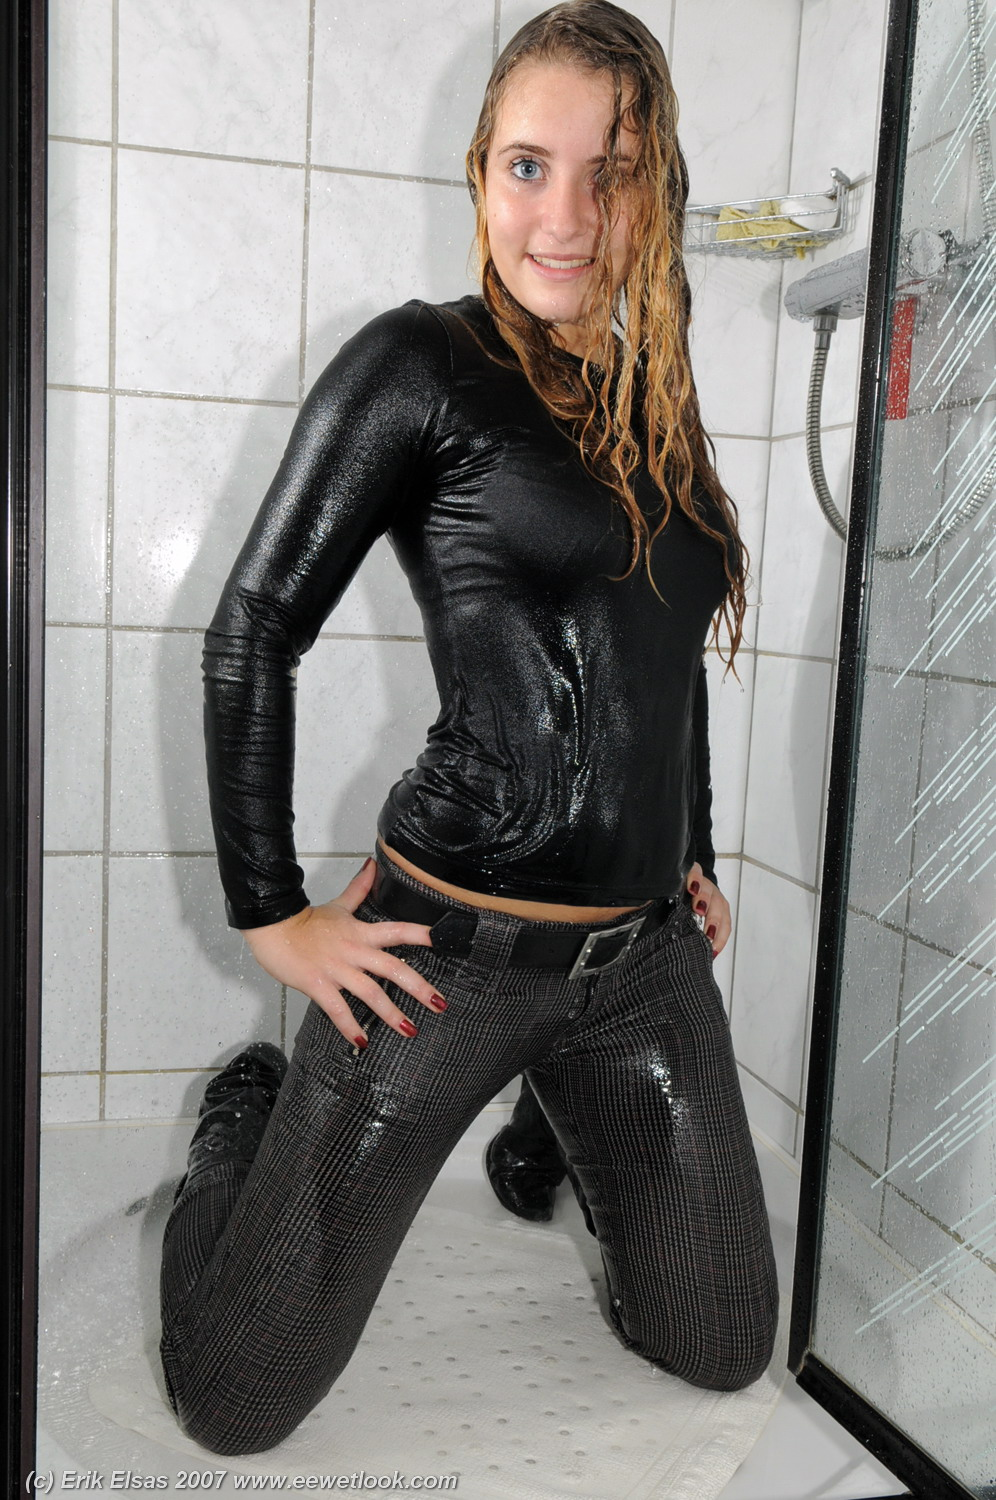 She wet at the idea to suck and fuck - 2 8